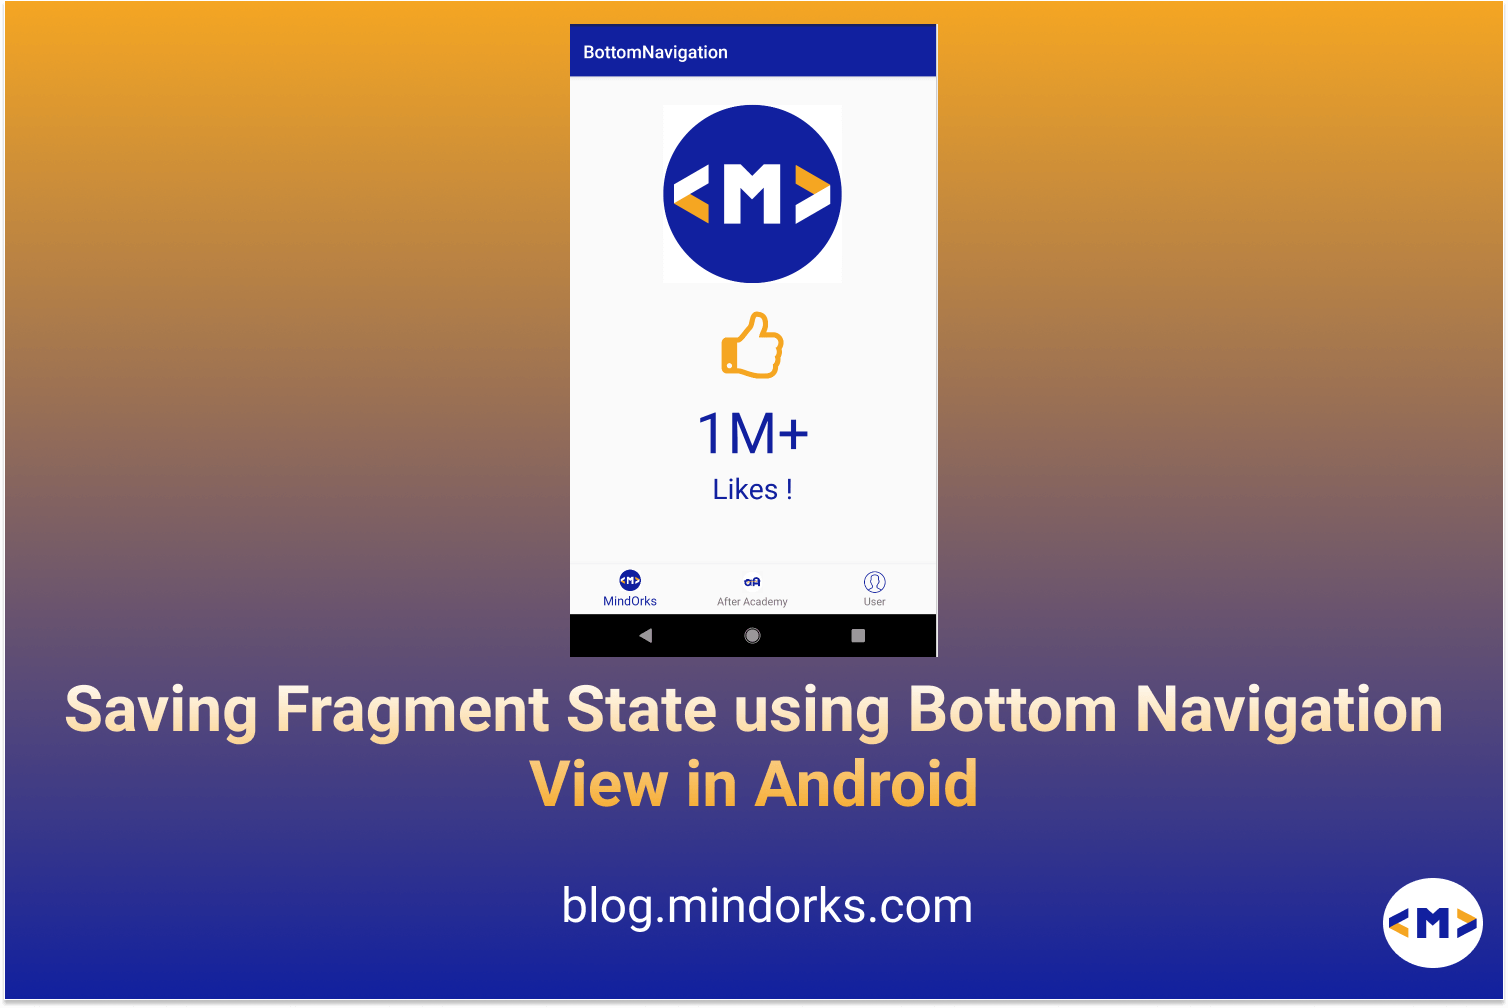 Saving Fragment States with BottomNavigationView